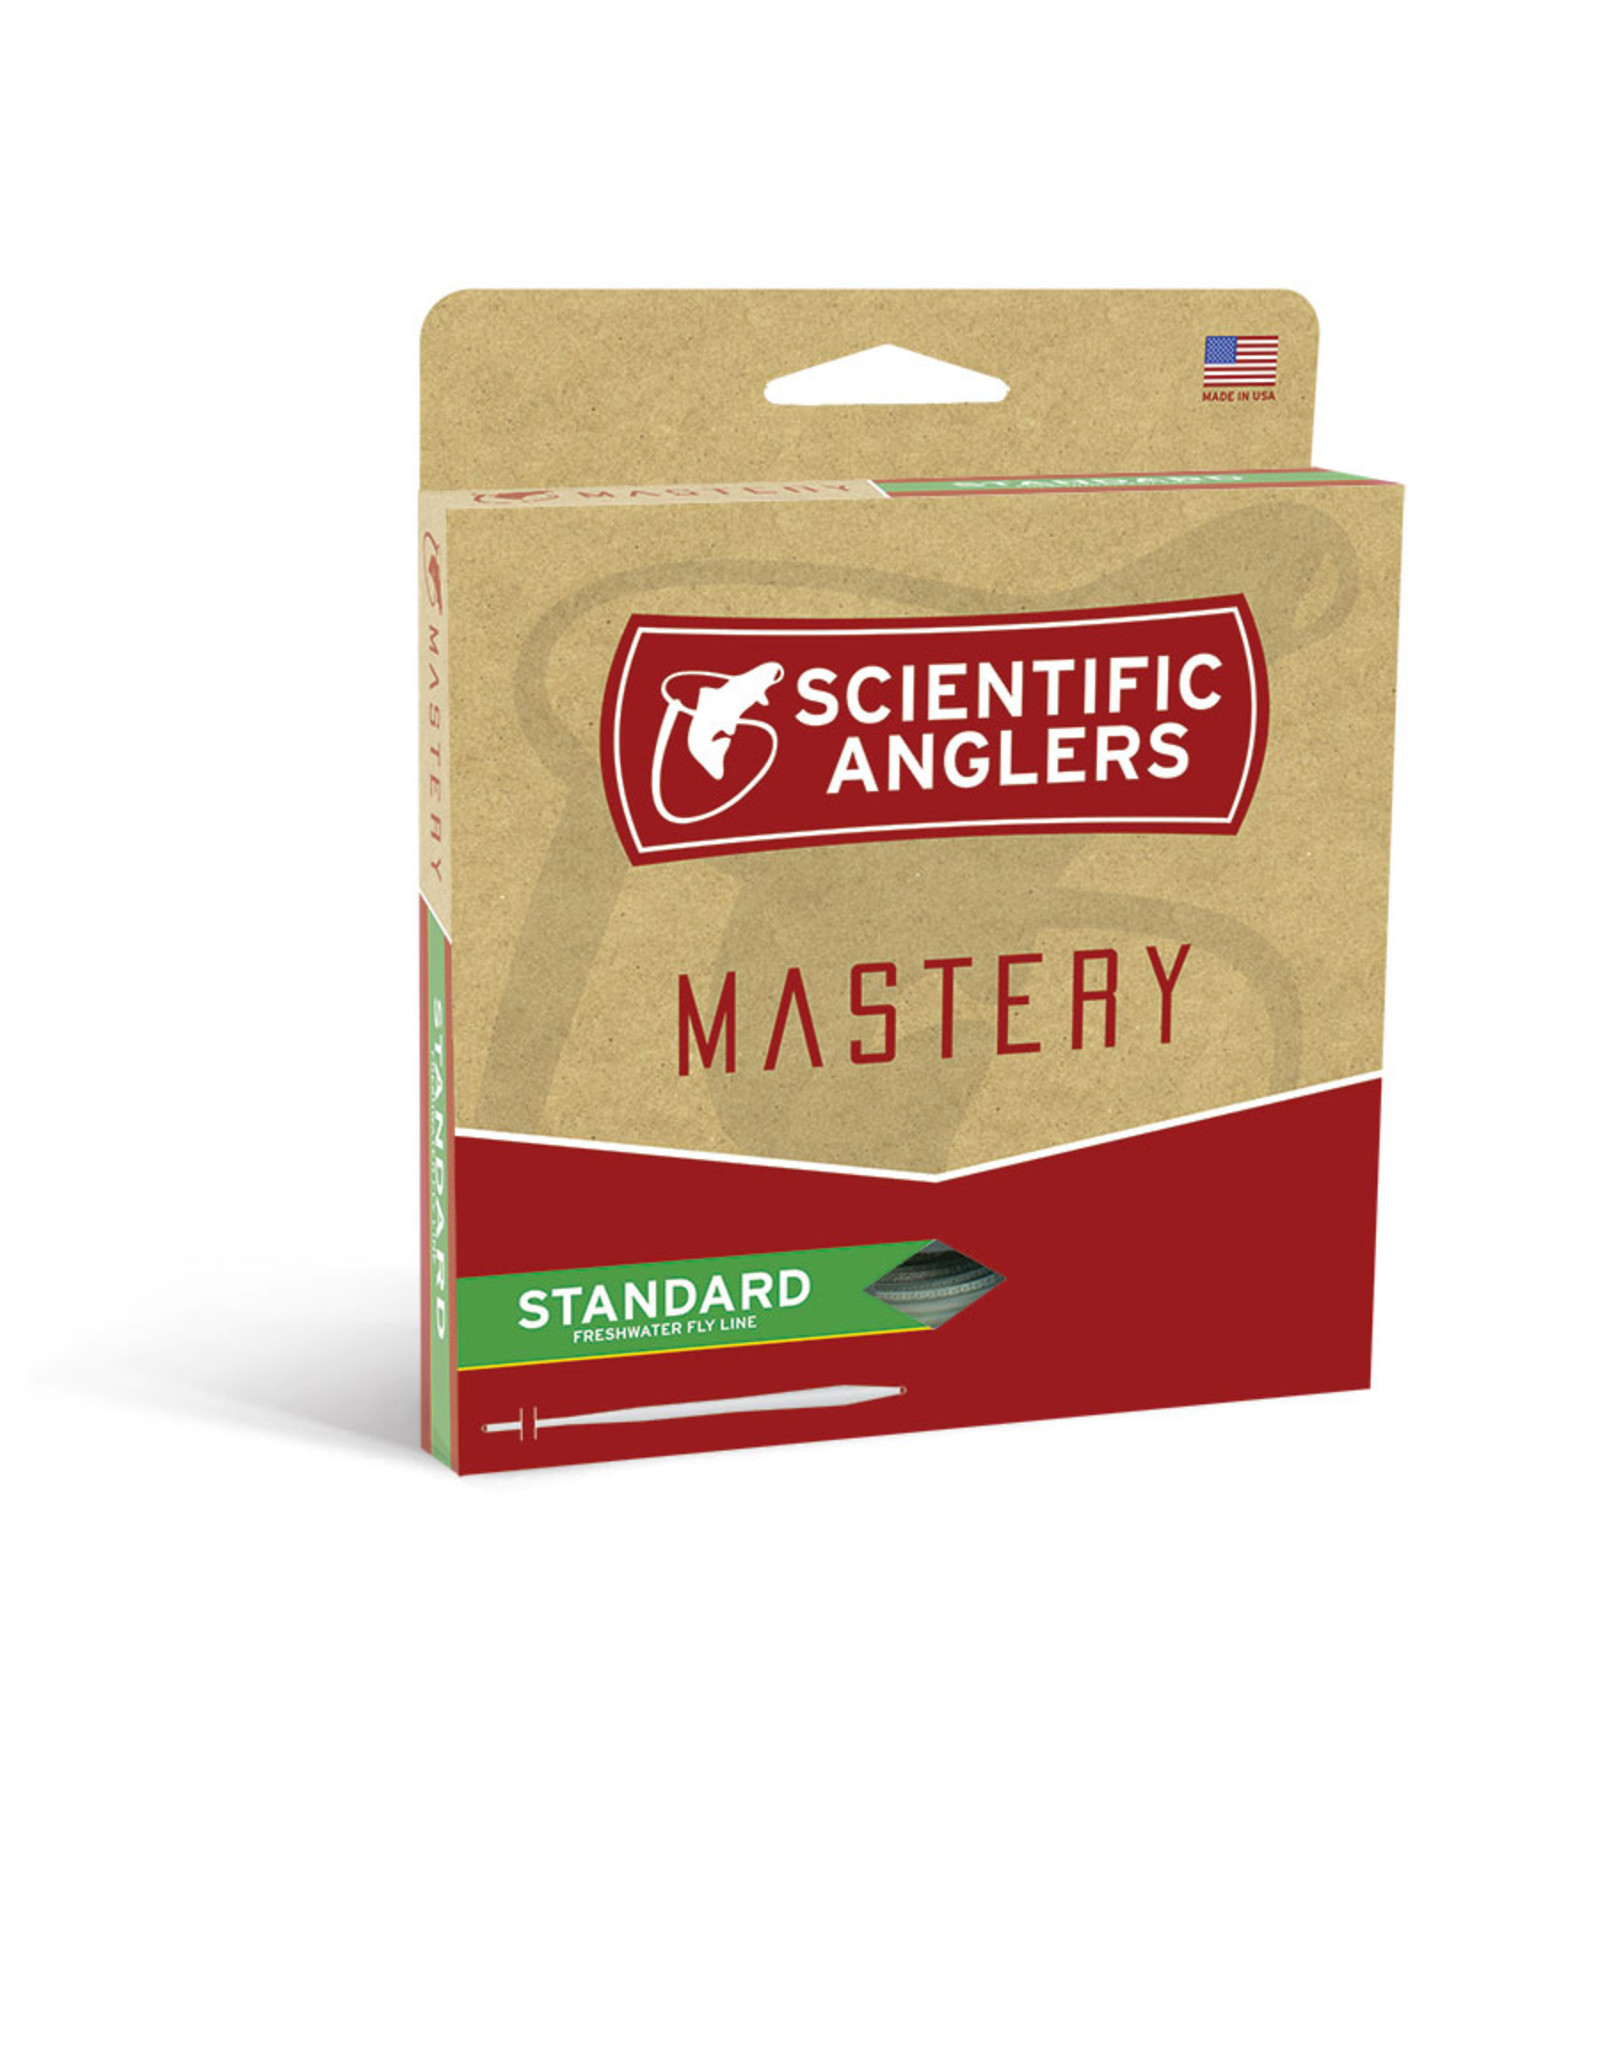 Scientific Anglers Scientific Anglers - Mastery Standard Fly Line